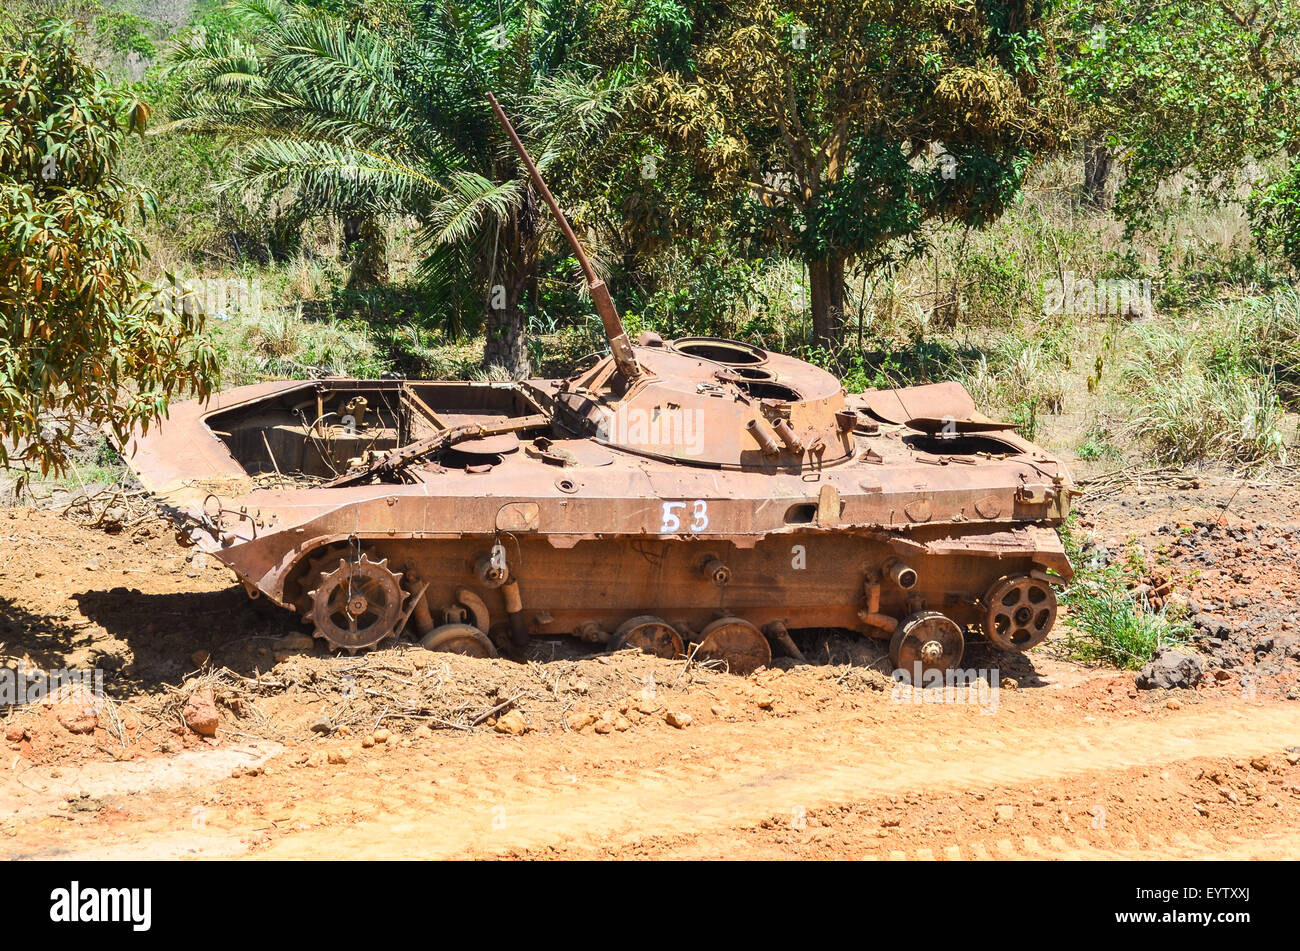 Abandoned rusty tank wreck in Angola, following the civil war - Stock Image